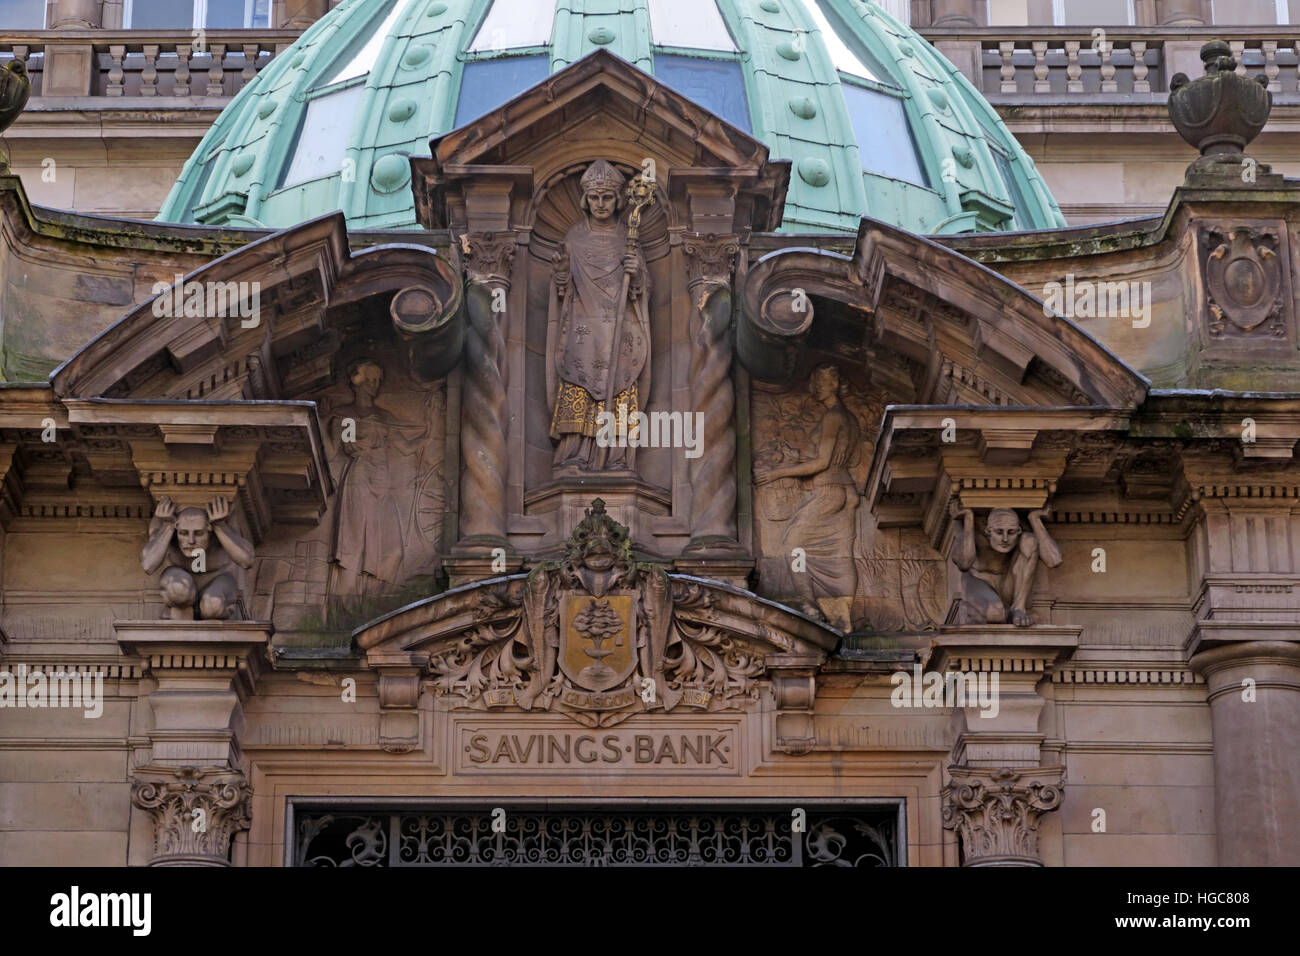 Savings bank,Ingram St,Glasgow,City,Centre, Scotland - Stock Image